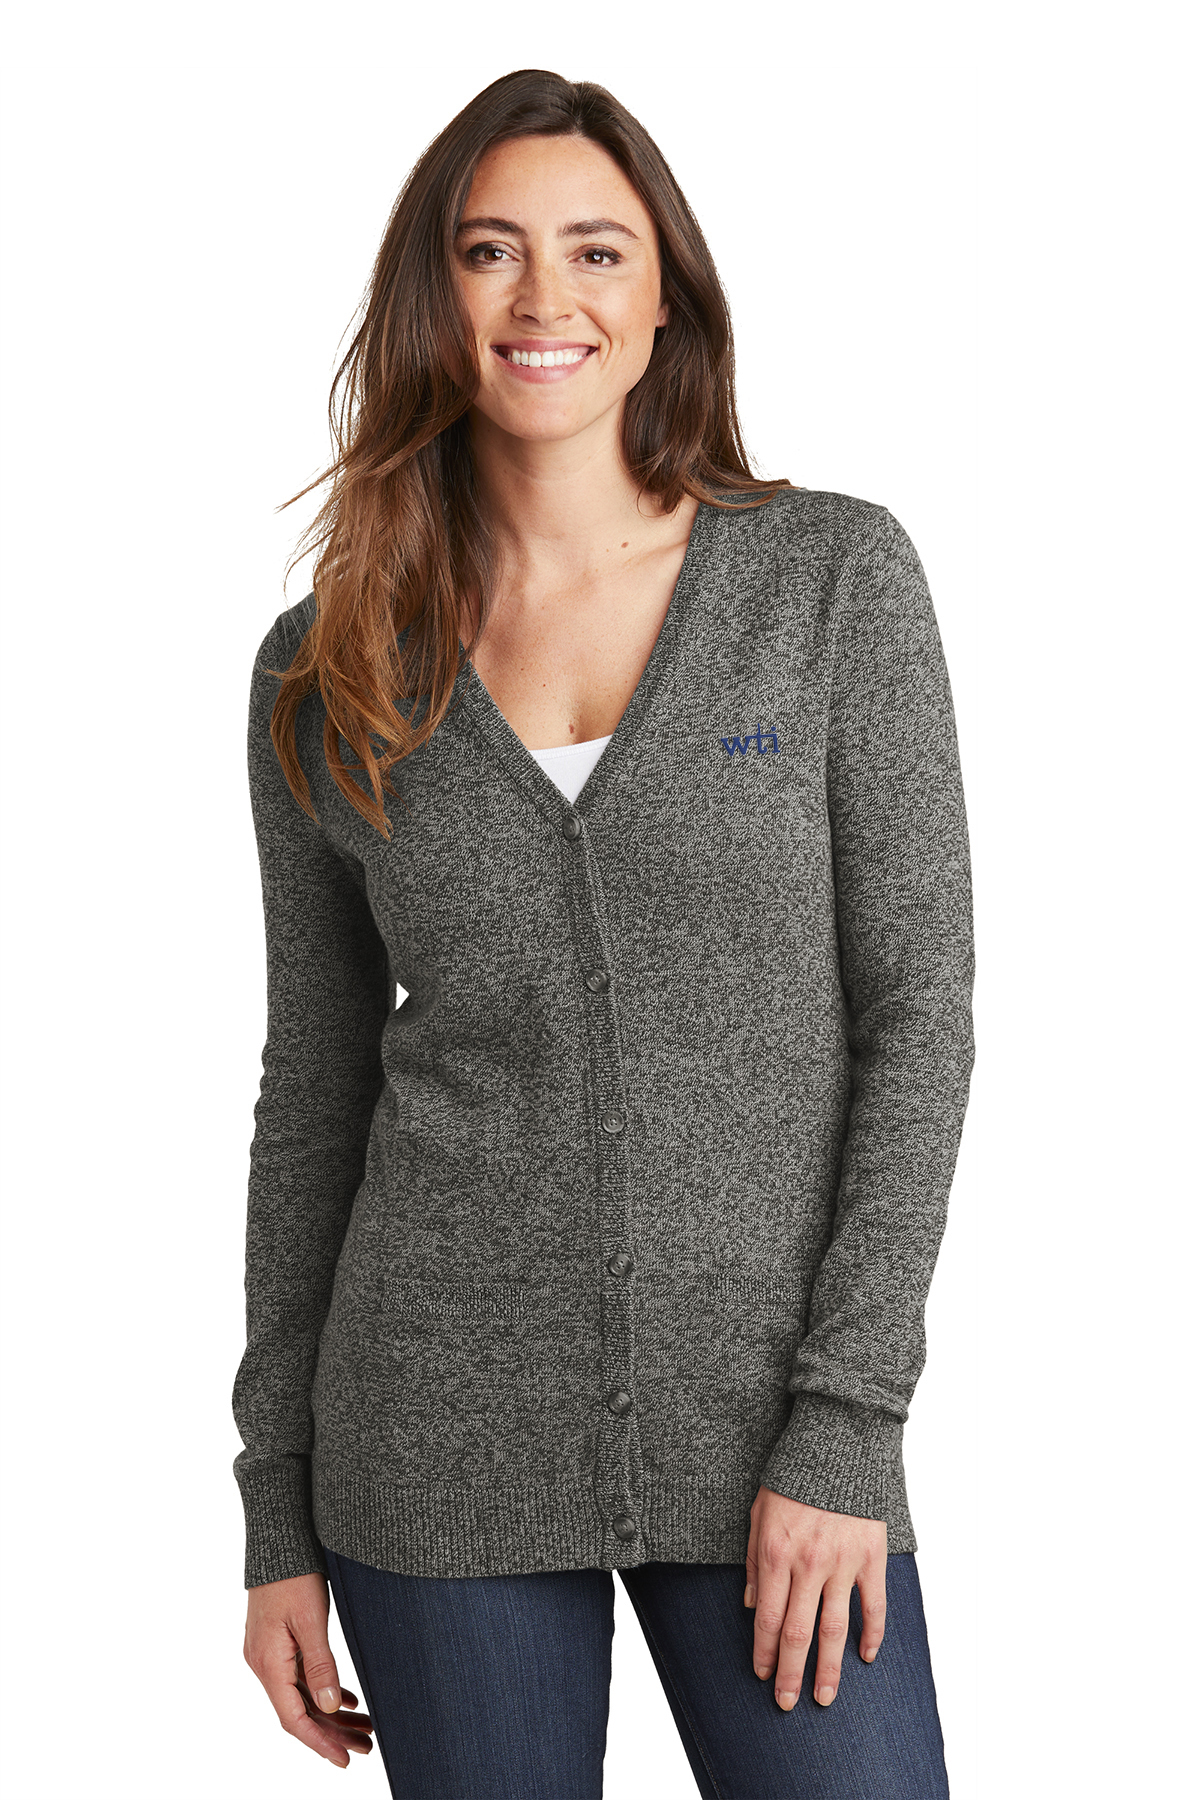 PA  Ladies Marled Cardigan Sweater. LSW415. Prices Starting At $43!